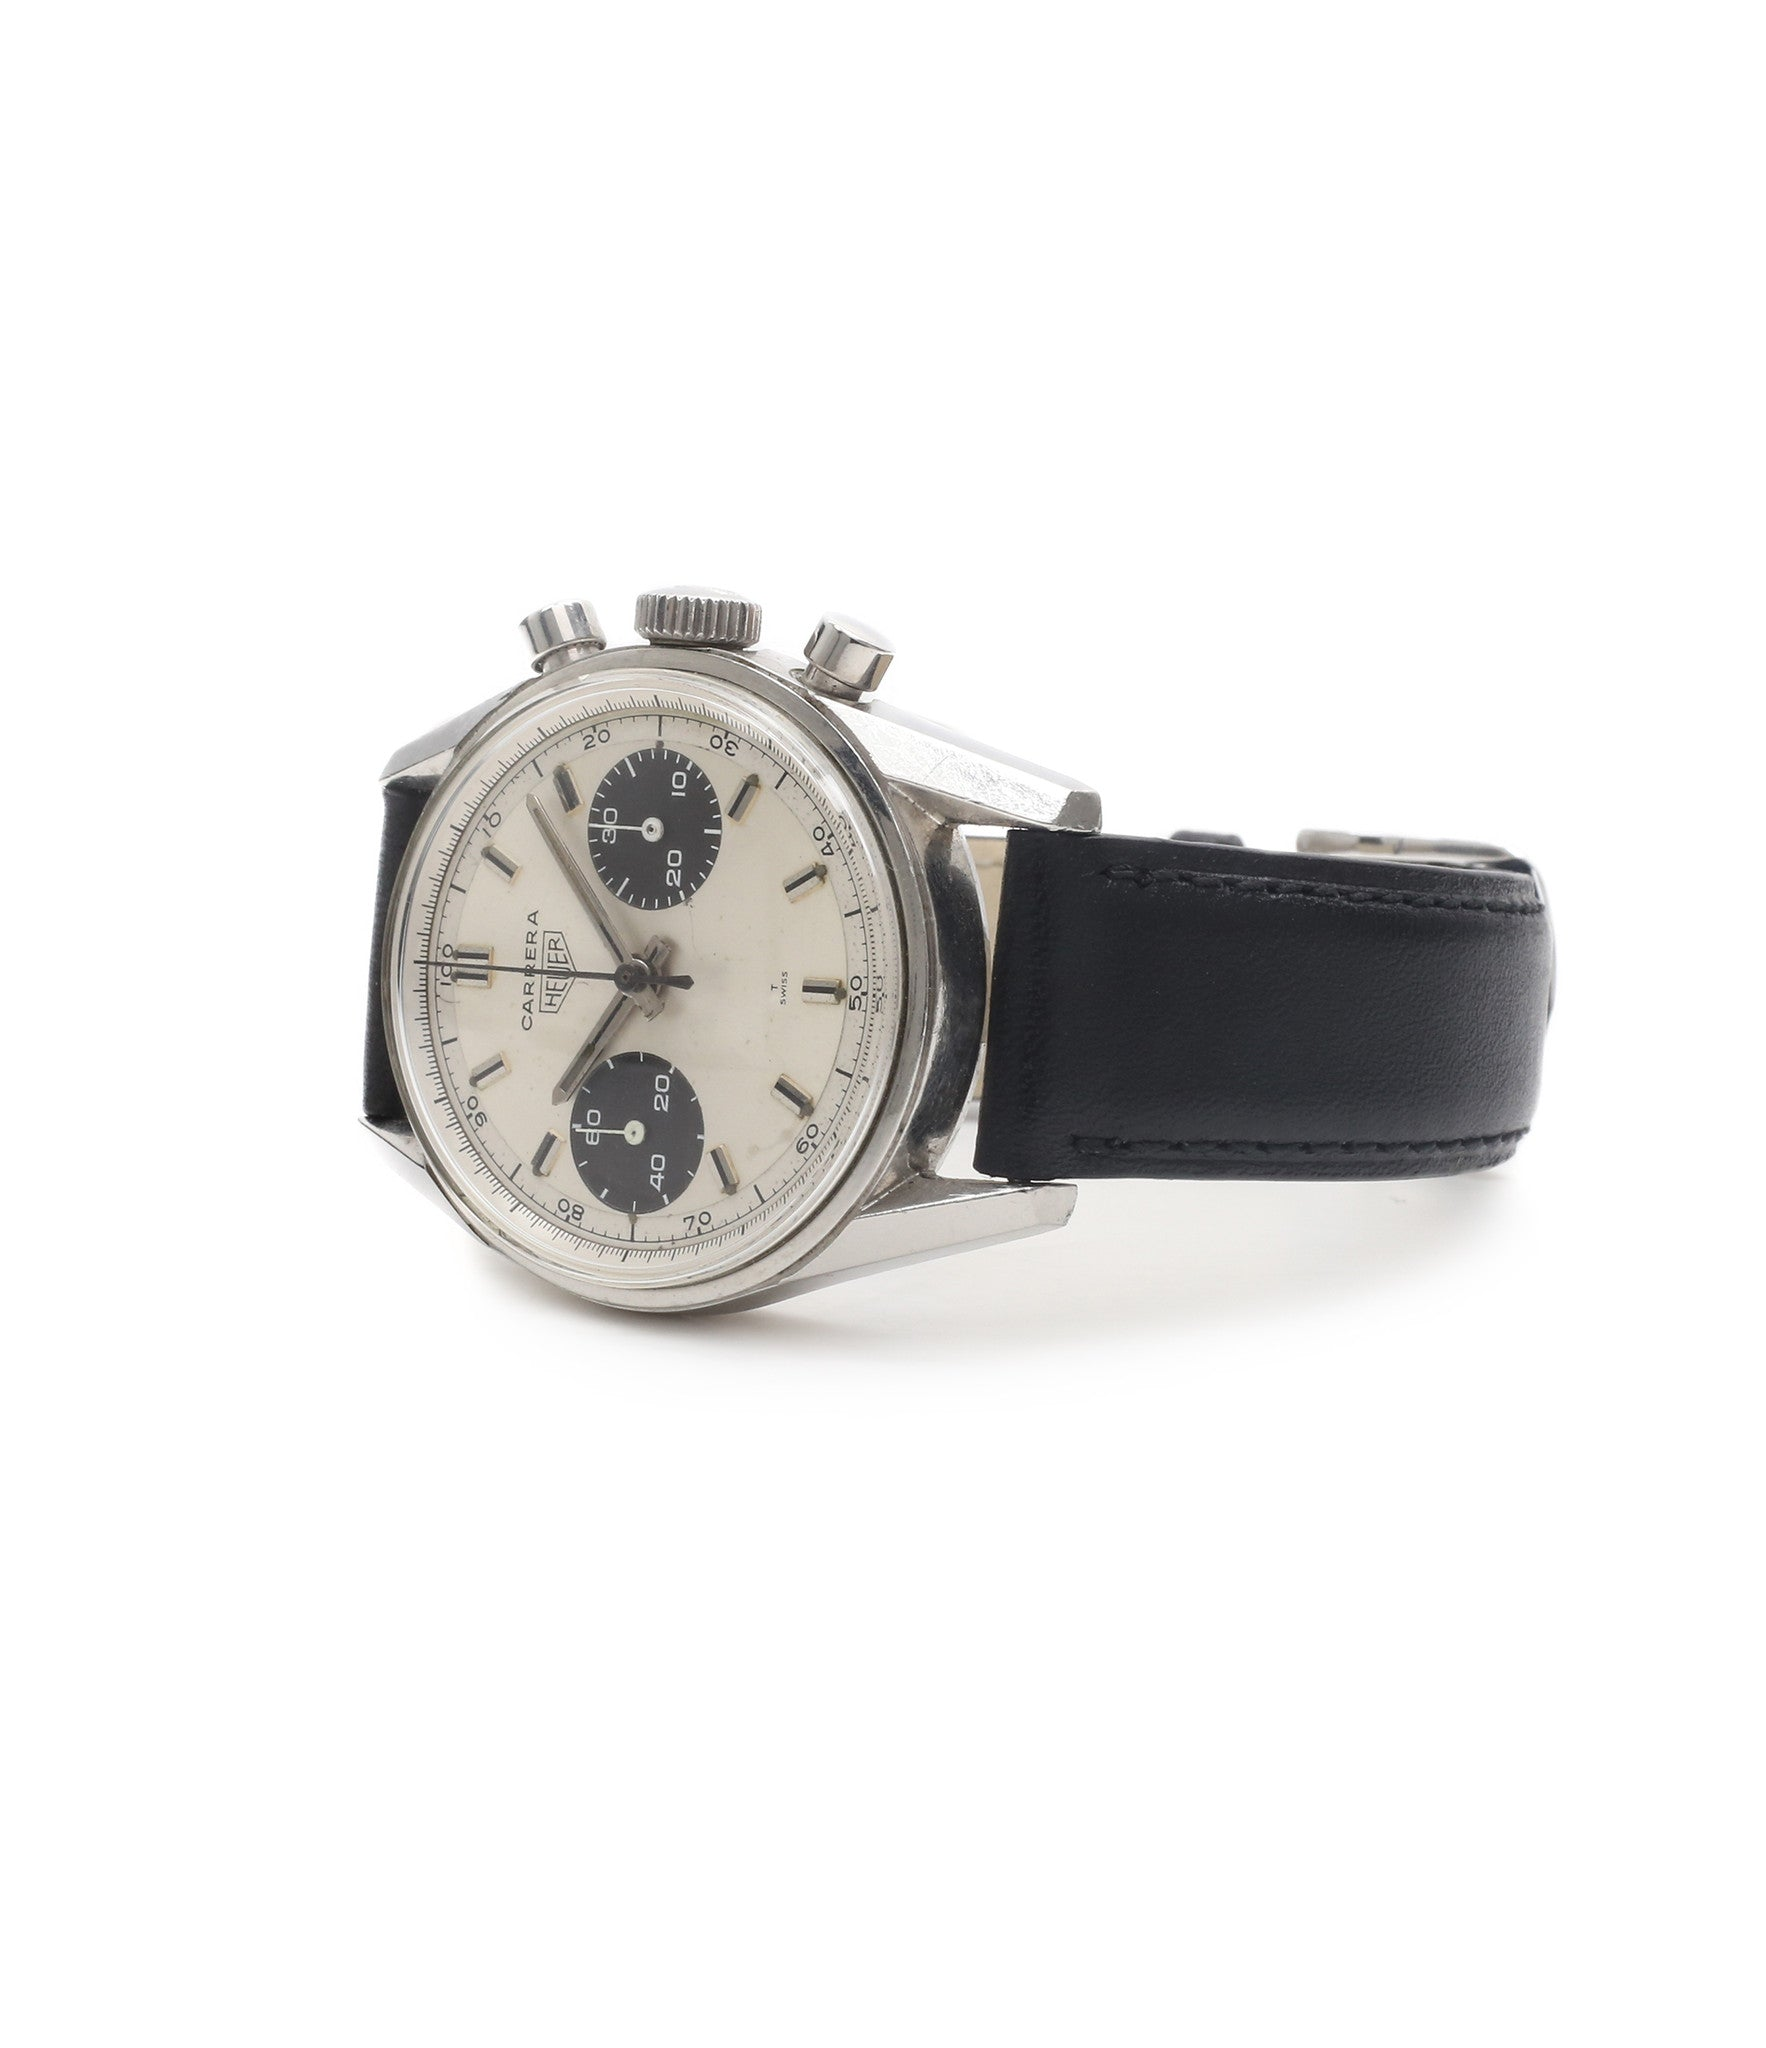 buy vintage watch in London Heuer Carrera 7753SND vintage sports watch panda dial online at A Collected Man